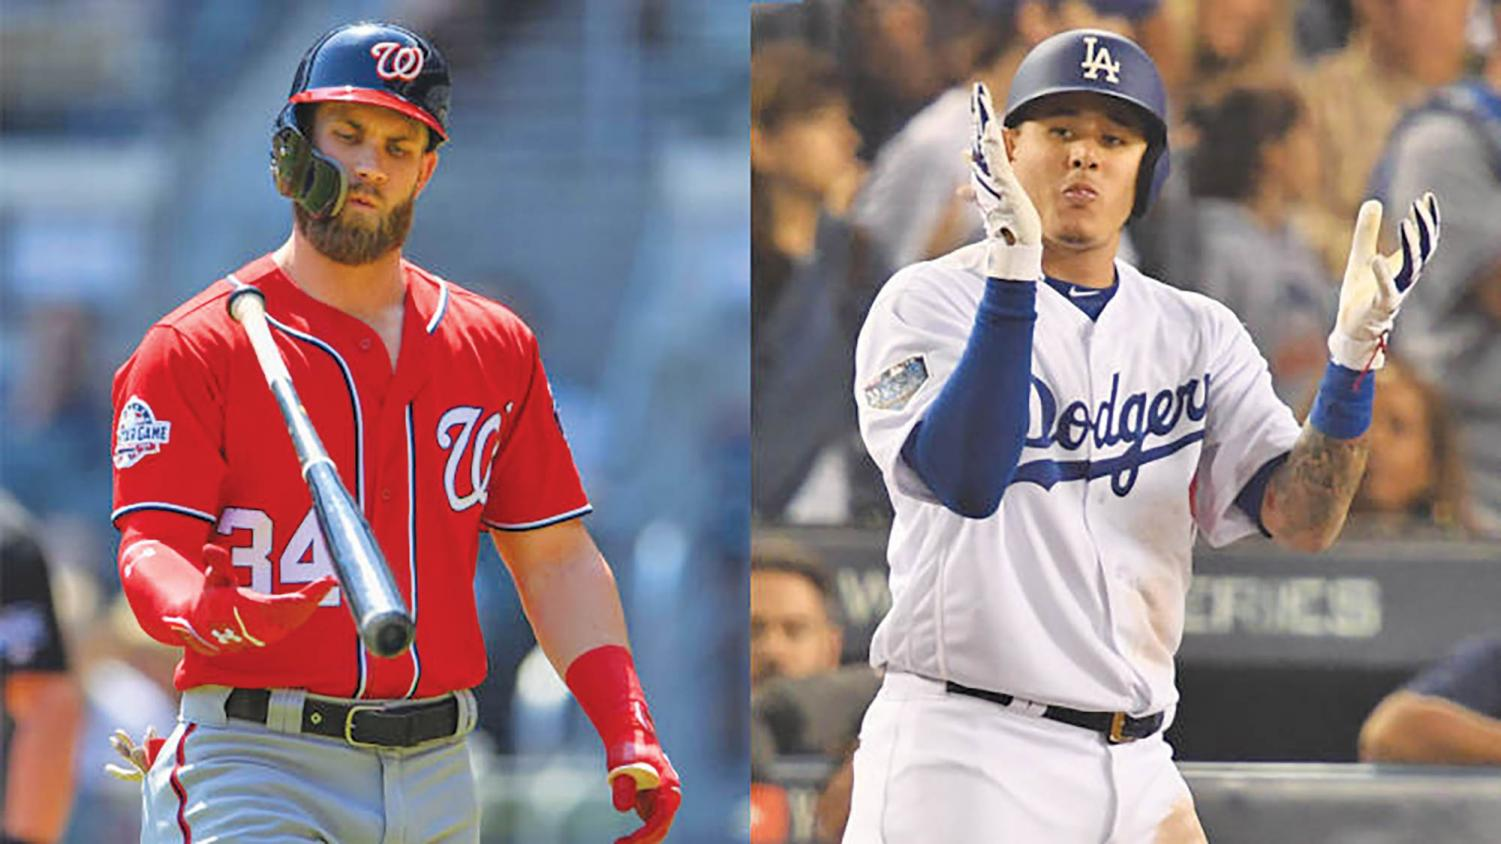 Bryce Harper (left) and Manny Machado (right) headline MLB free-agents.